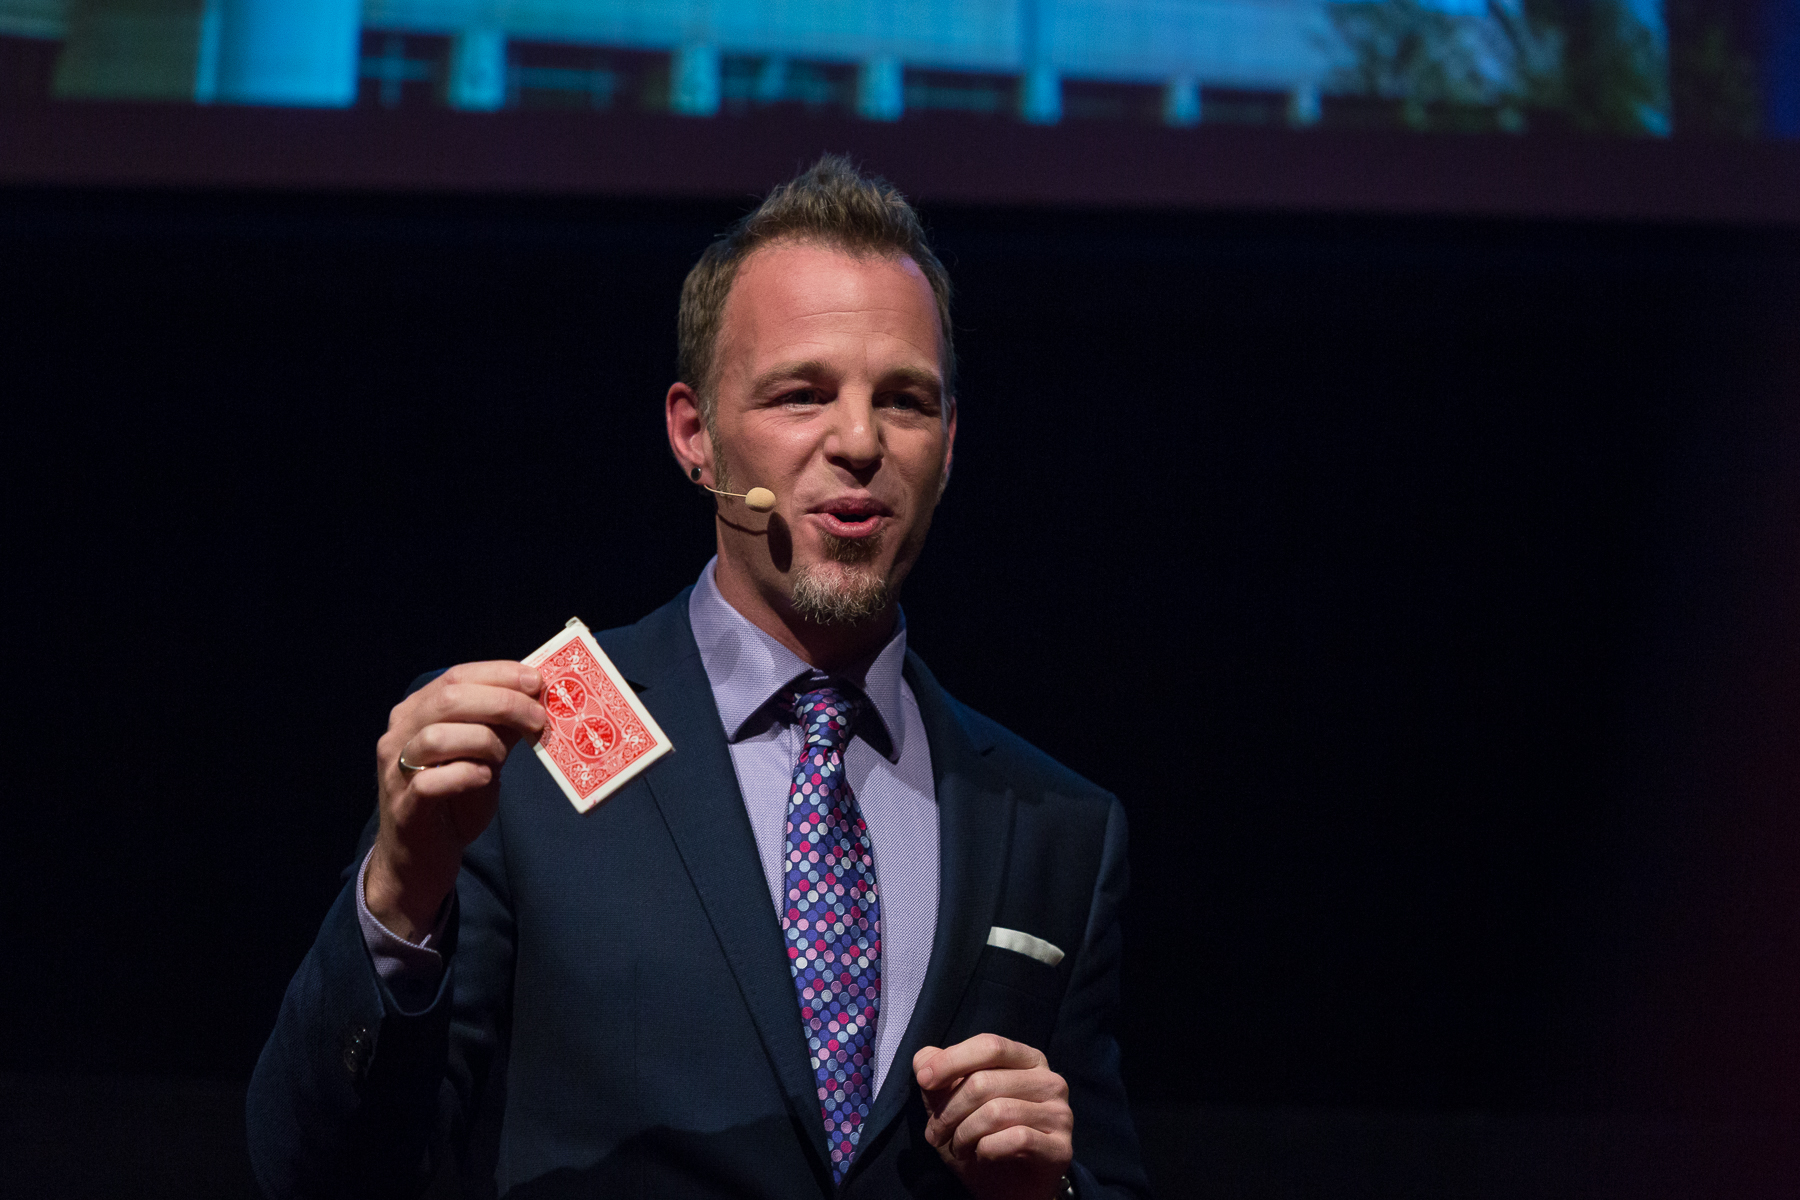 """ Hi, I'm Adam, how may I help you? - You may have seen me fool Penn & Teller on their hit show Fool Us. Let me bring that same passion, professionalism and performance to your event!My goal is to make you look like a rockstar to your co-workers, friends and family."""